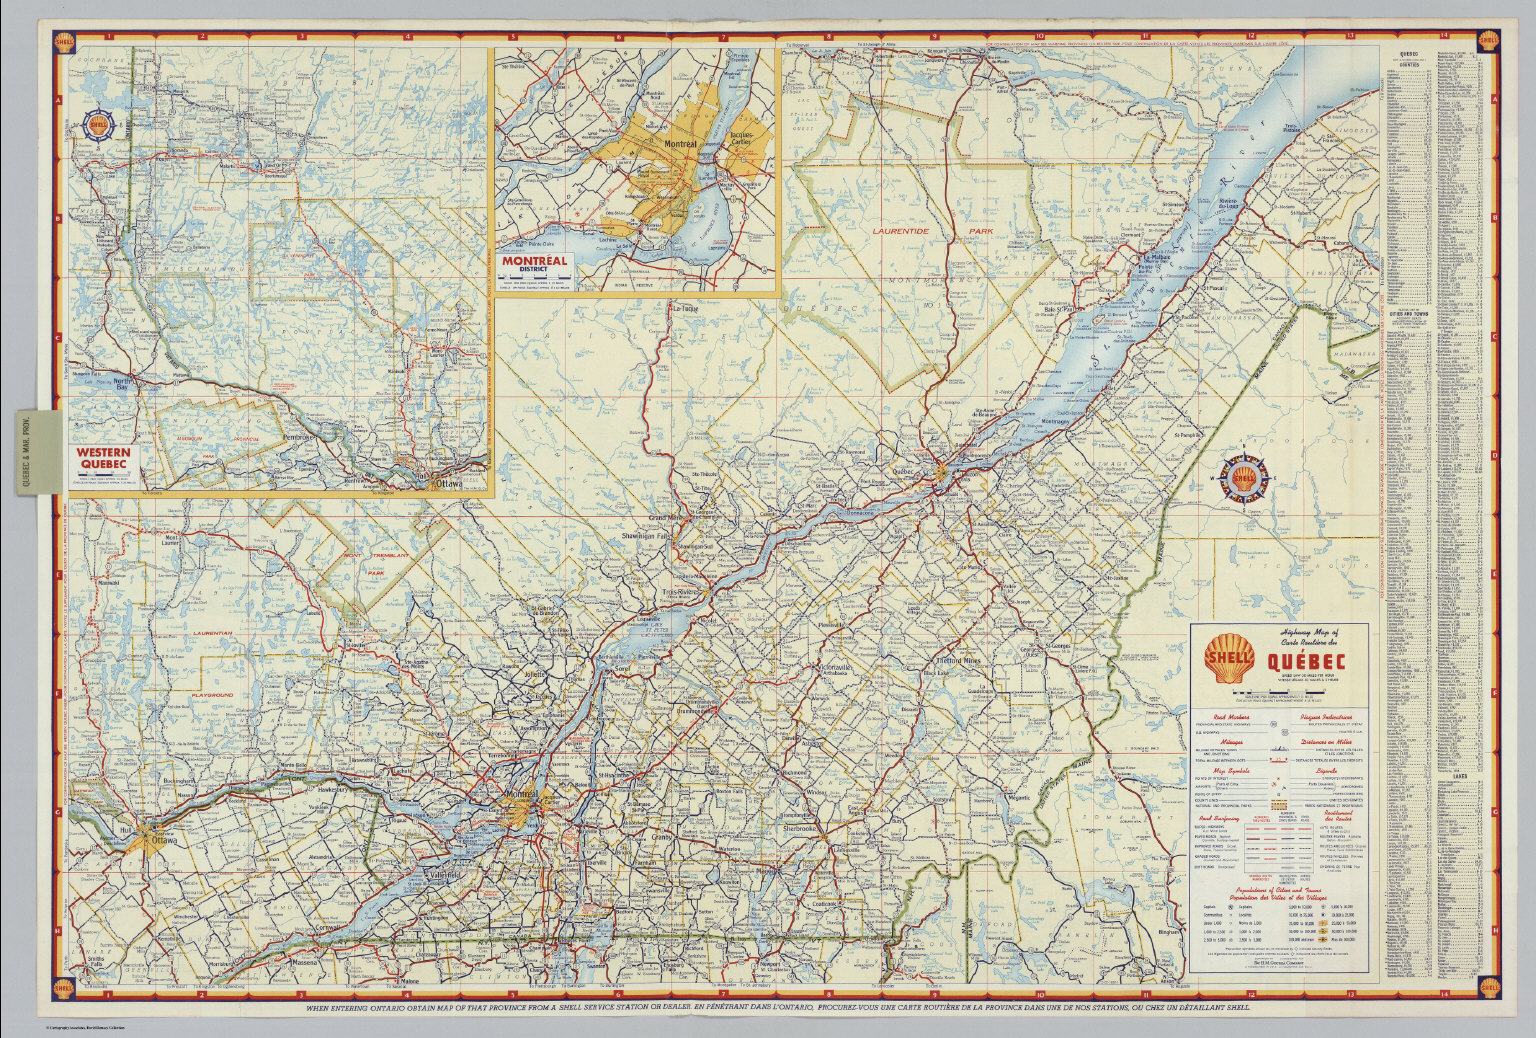 Shell Highway Map Of Quebec David Rumsey Historical Map Collection - Quebec chicago map